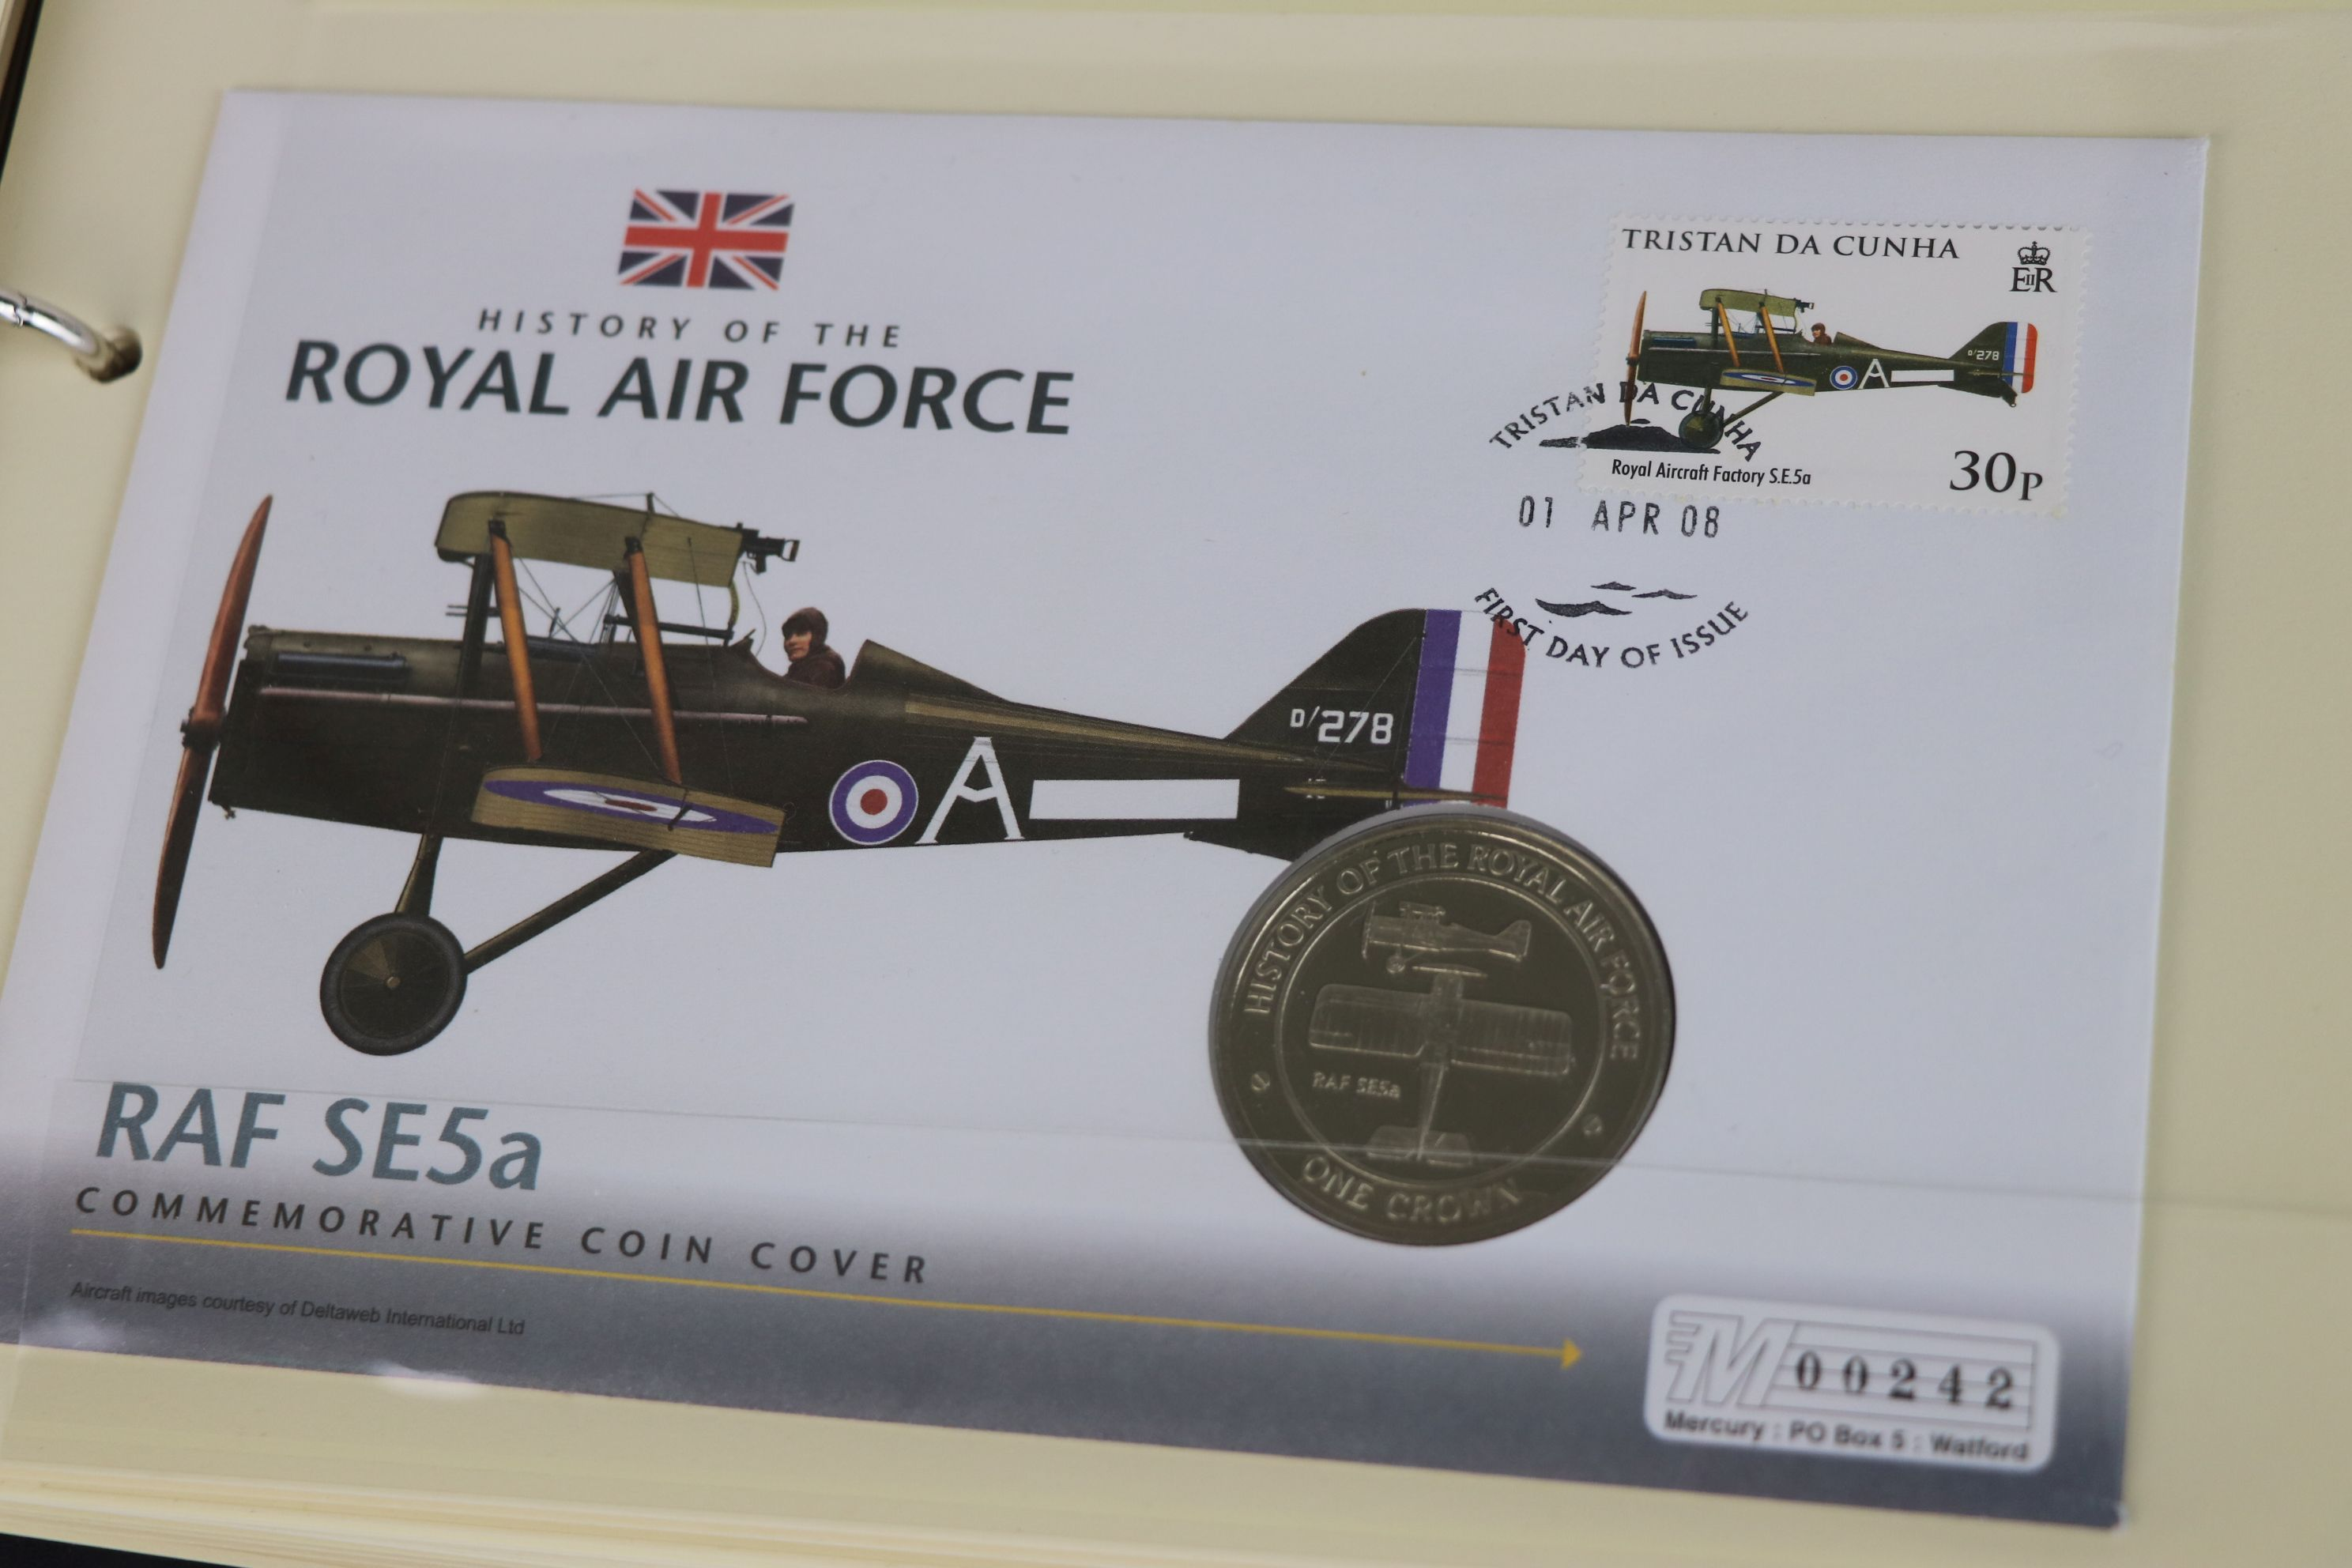 A limited edition Westminster Mint History of the Royal Air Force coin and stamp cover collection to - Image 9 of 16